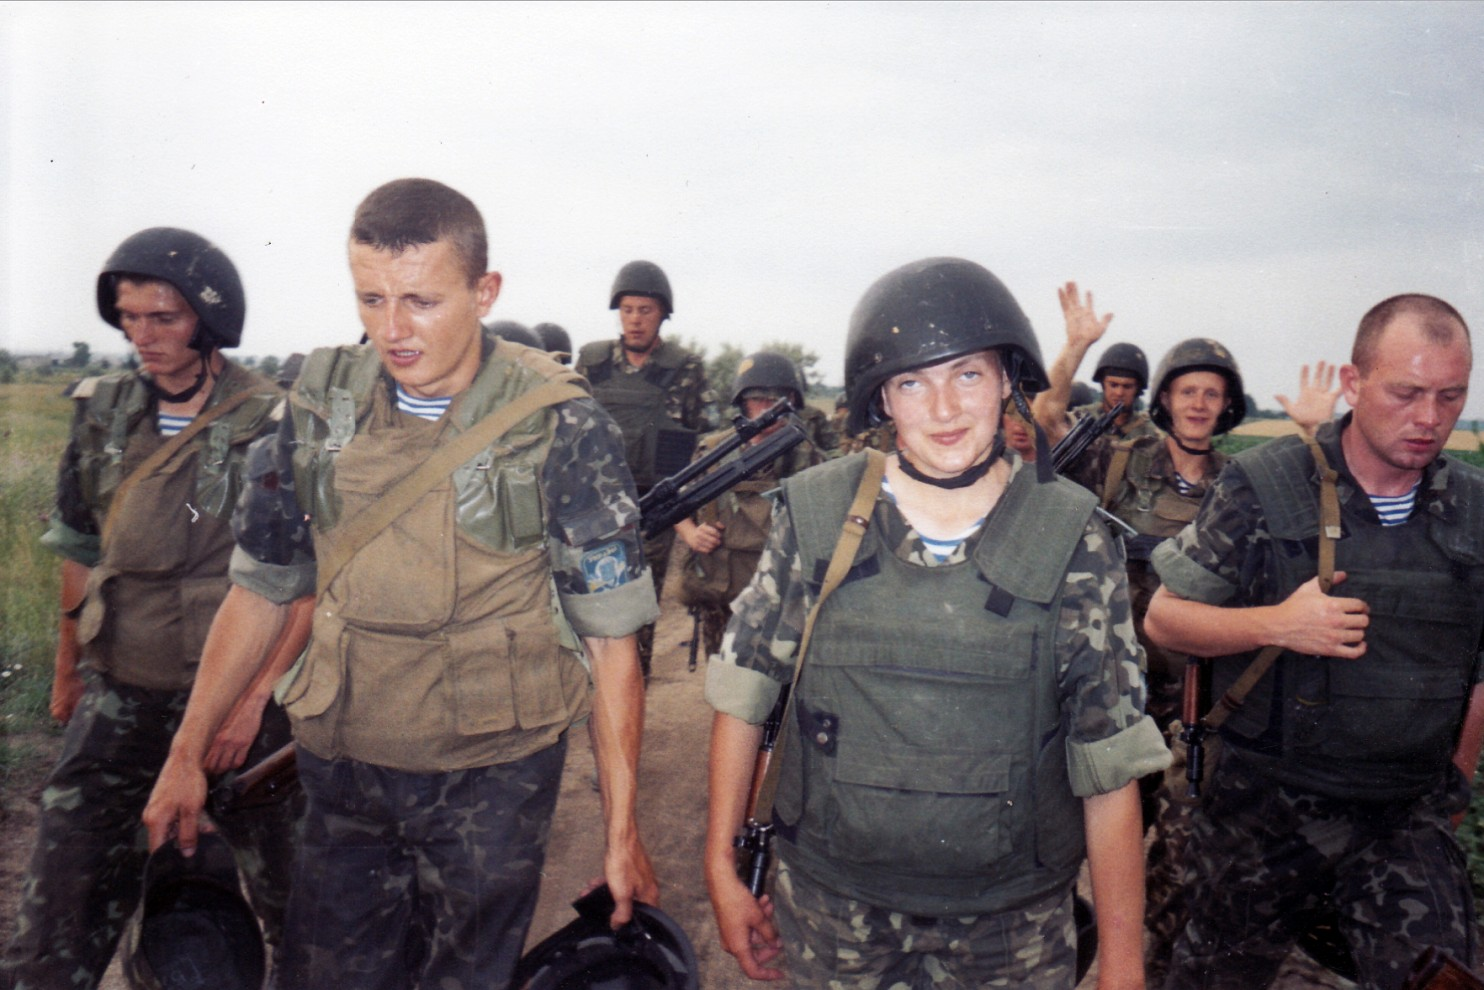 Nadiya Savchenko, third from left, is pictured before a deployment to Iraq in 2004. In Aug. 2015 she appeared in a Russian court to face murder charges, after allegedly being kidnapped from Ukraine. Many feel her trial is an example of Russia's impropriety in seeking justice for casualties in the Ukraine crisis. Photo: Savchenko family via Washington Post